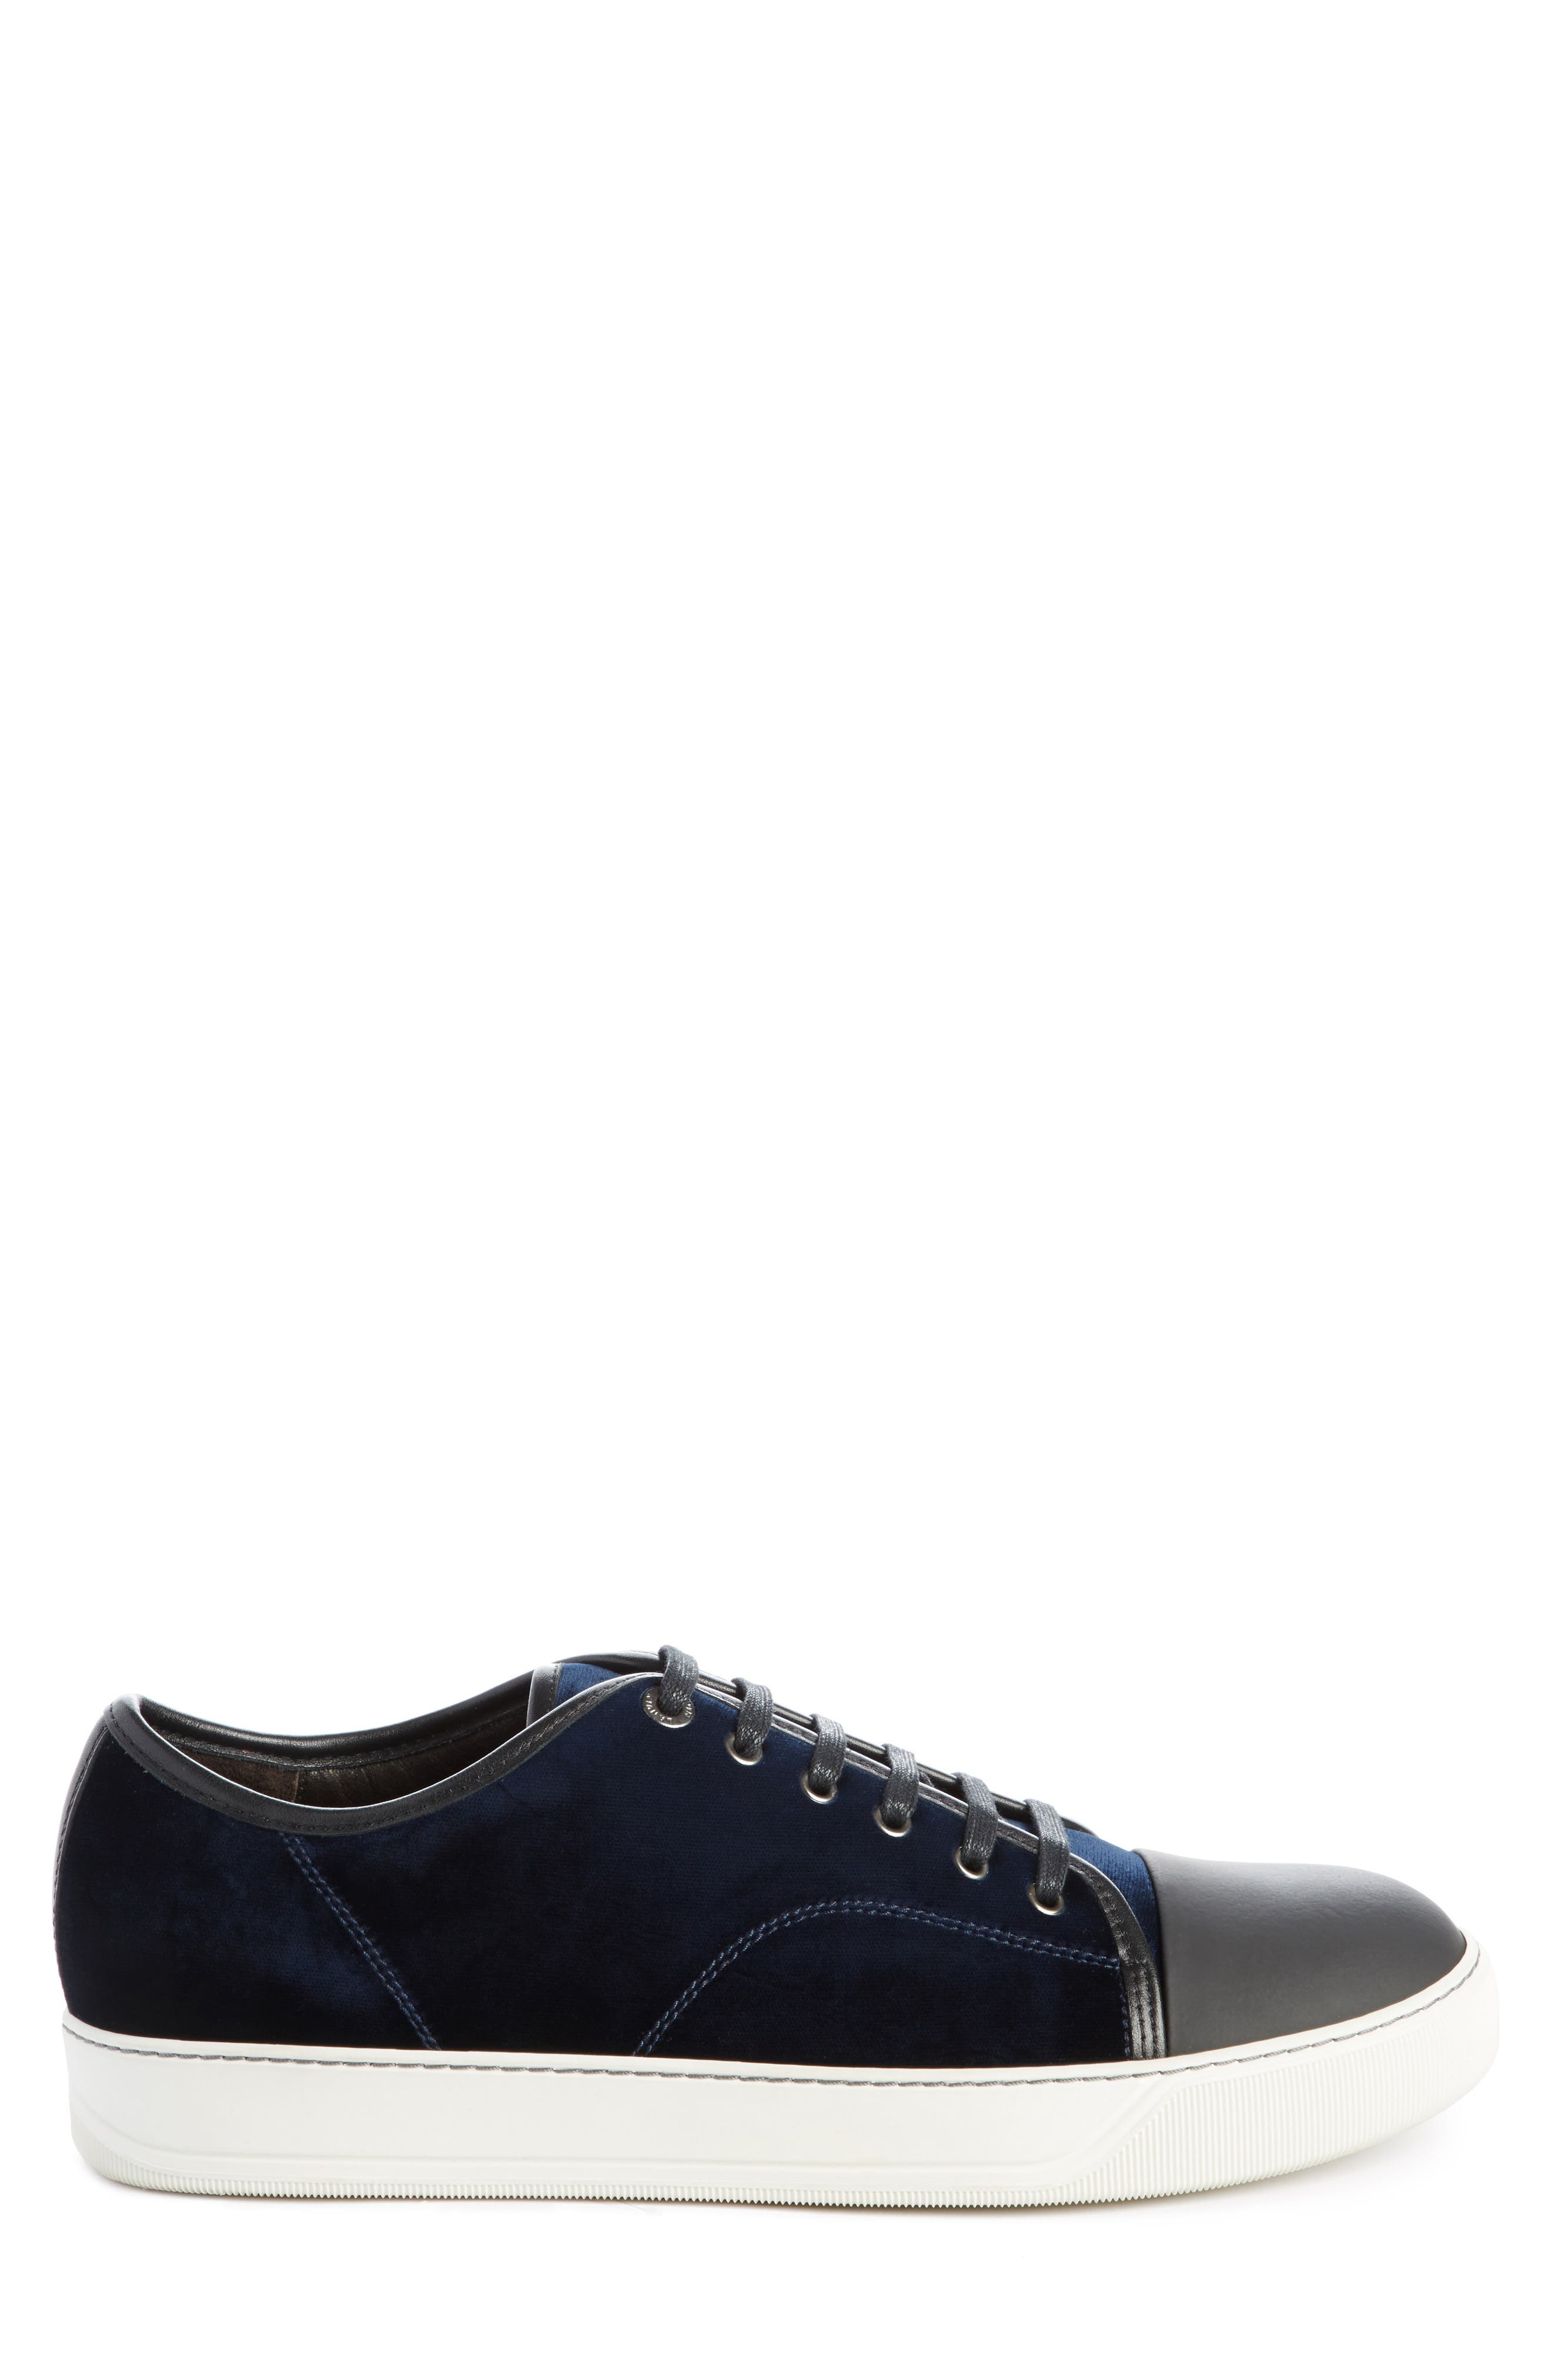 Alternate Image 4  - Lanvin Low Top Sneaker (Men)